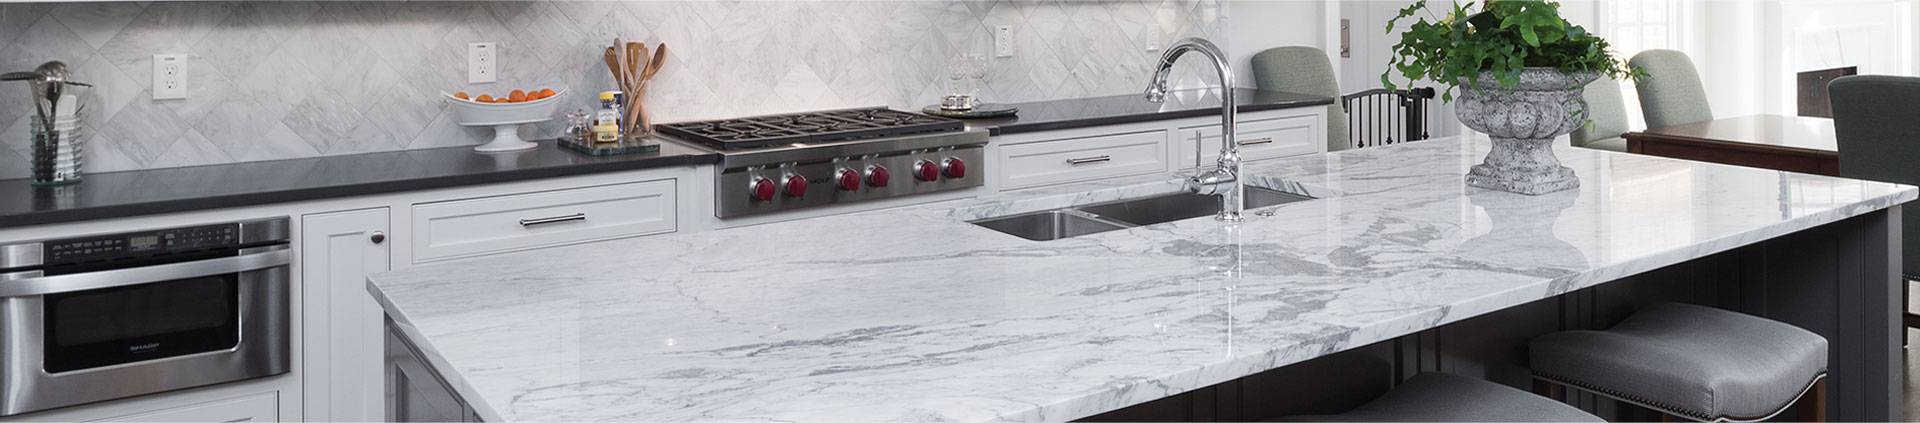 portfolio inspirations countertops new cheap home counter kitchen competitive stone of design tops types marble granite